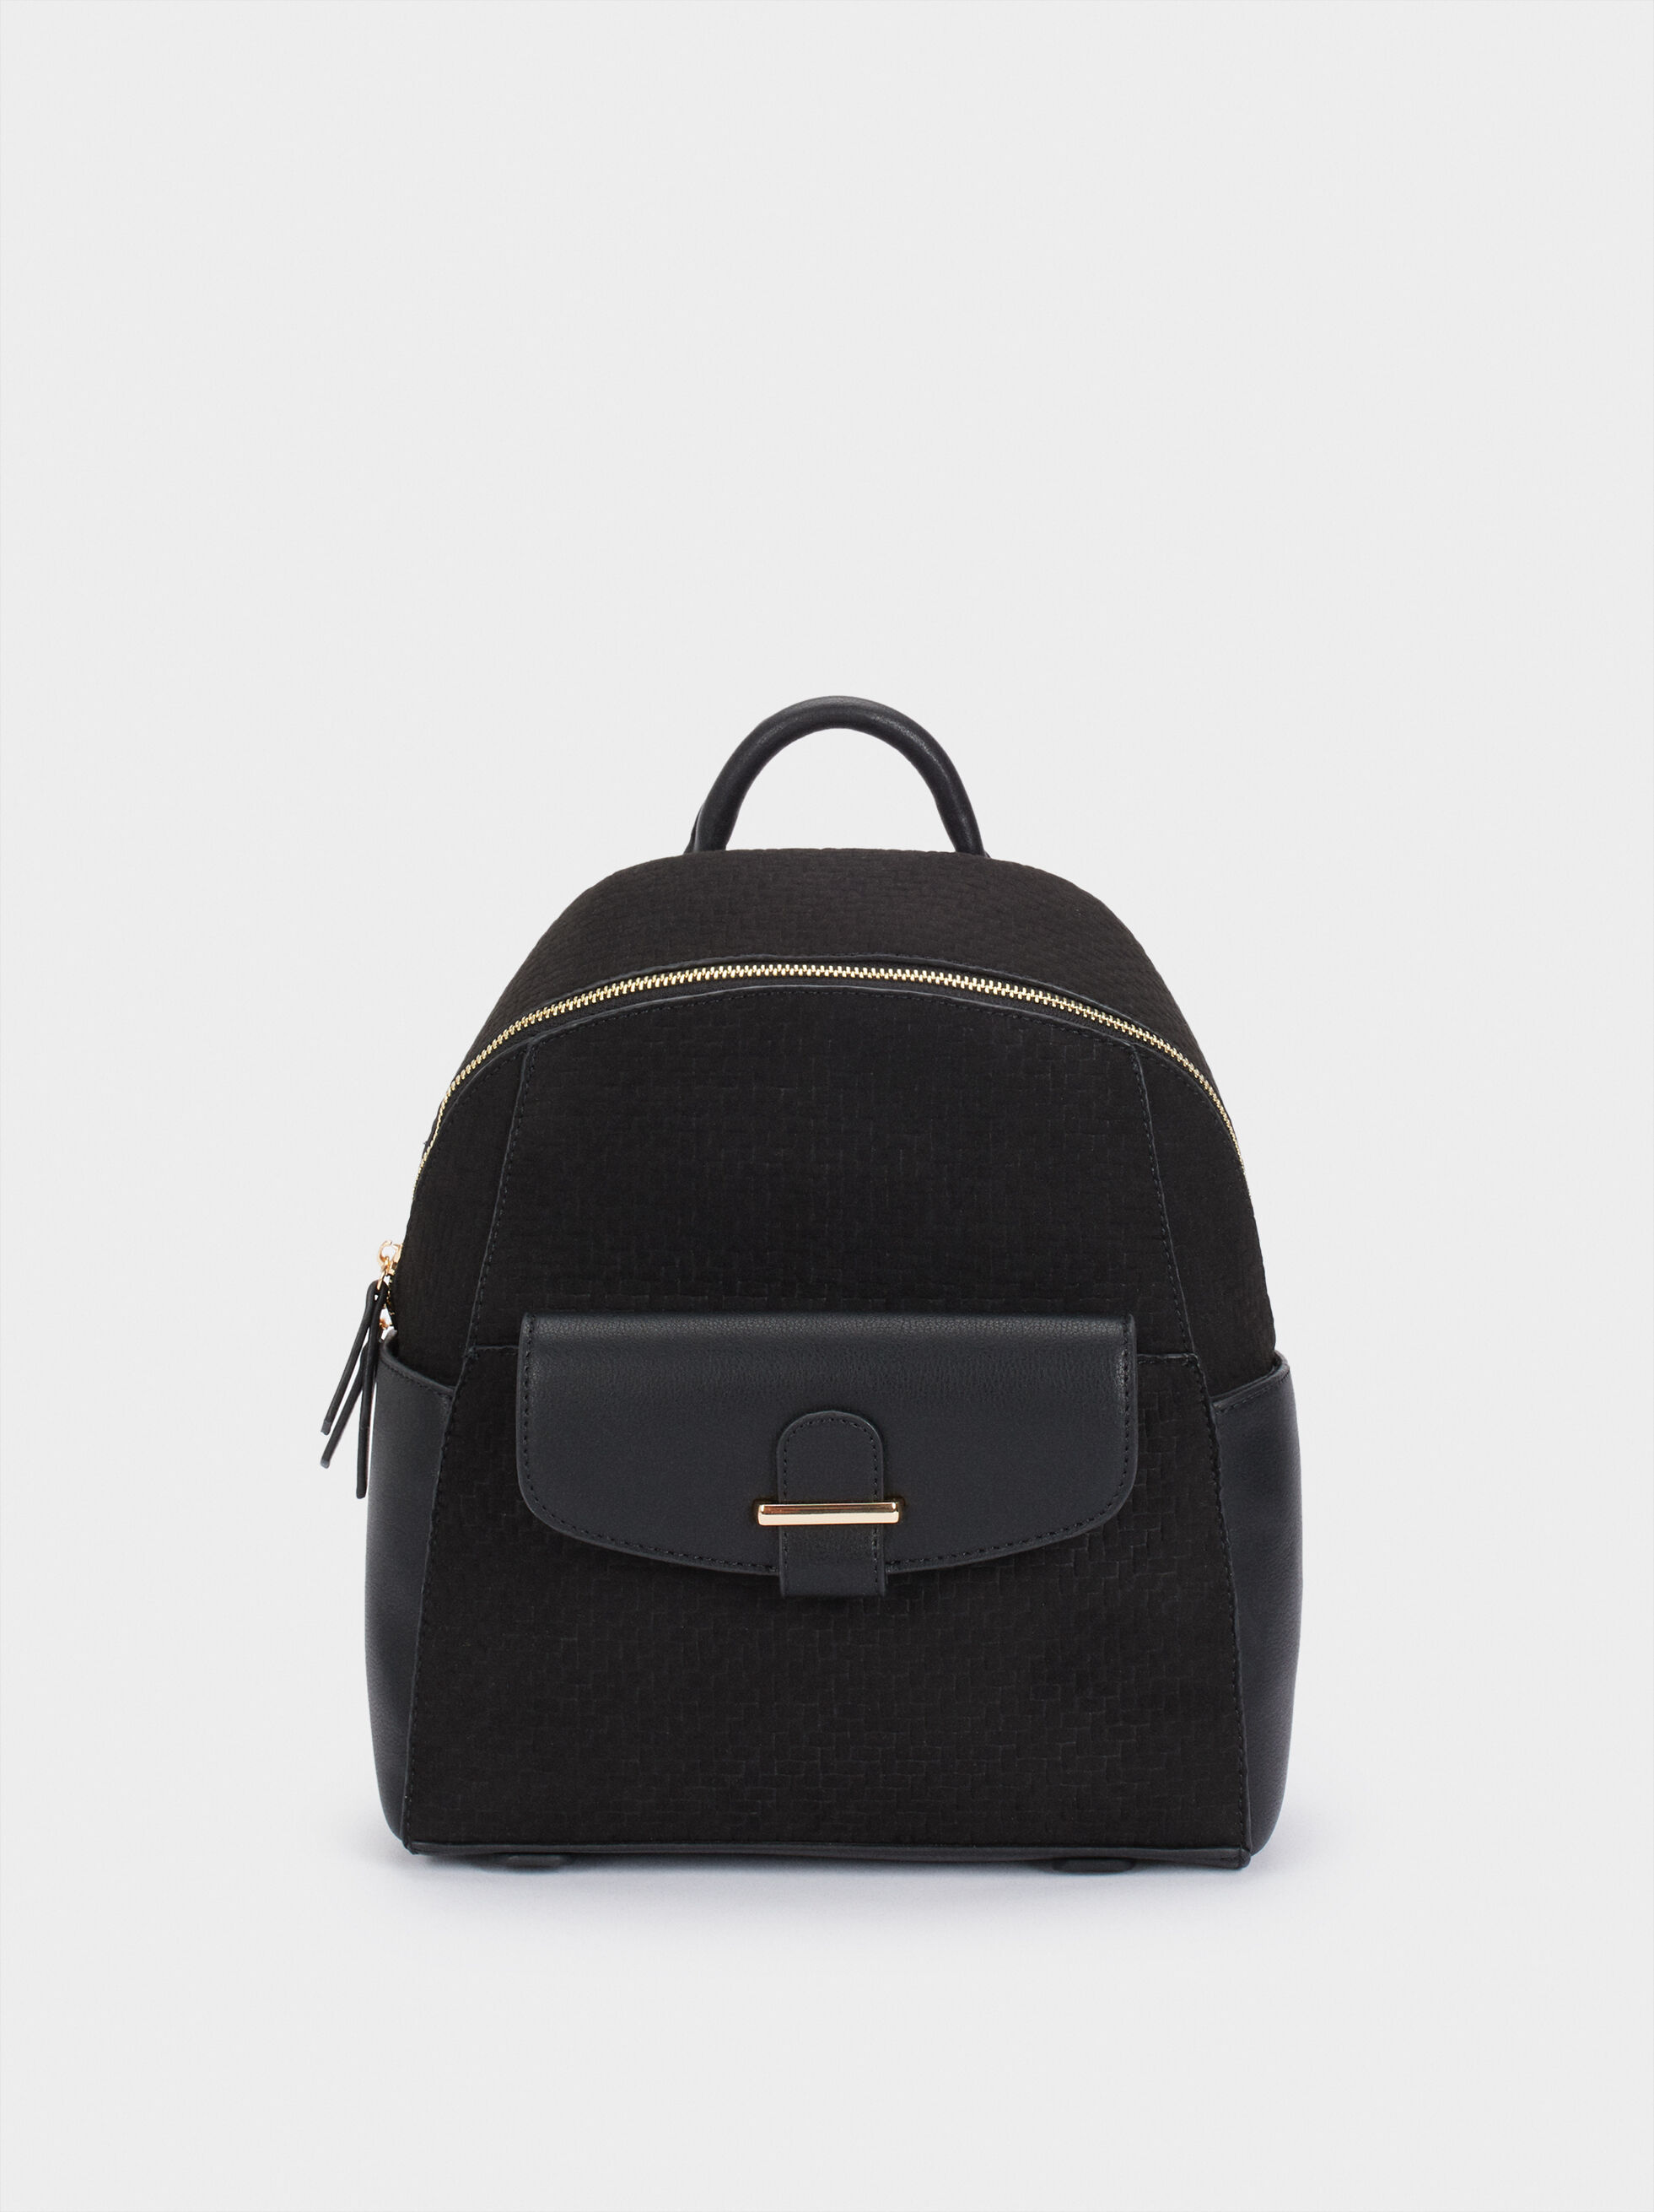 Elisa Backpack, Black, hi-res